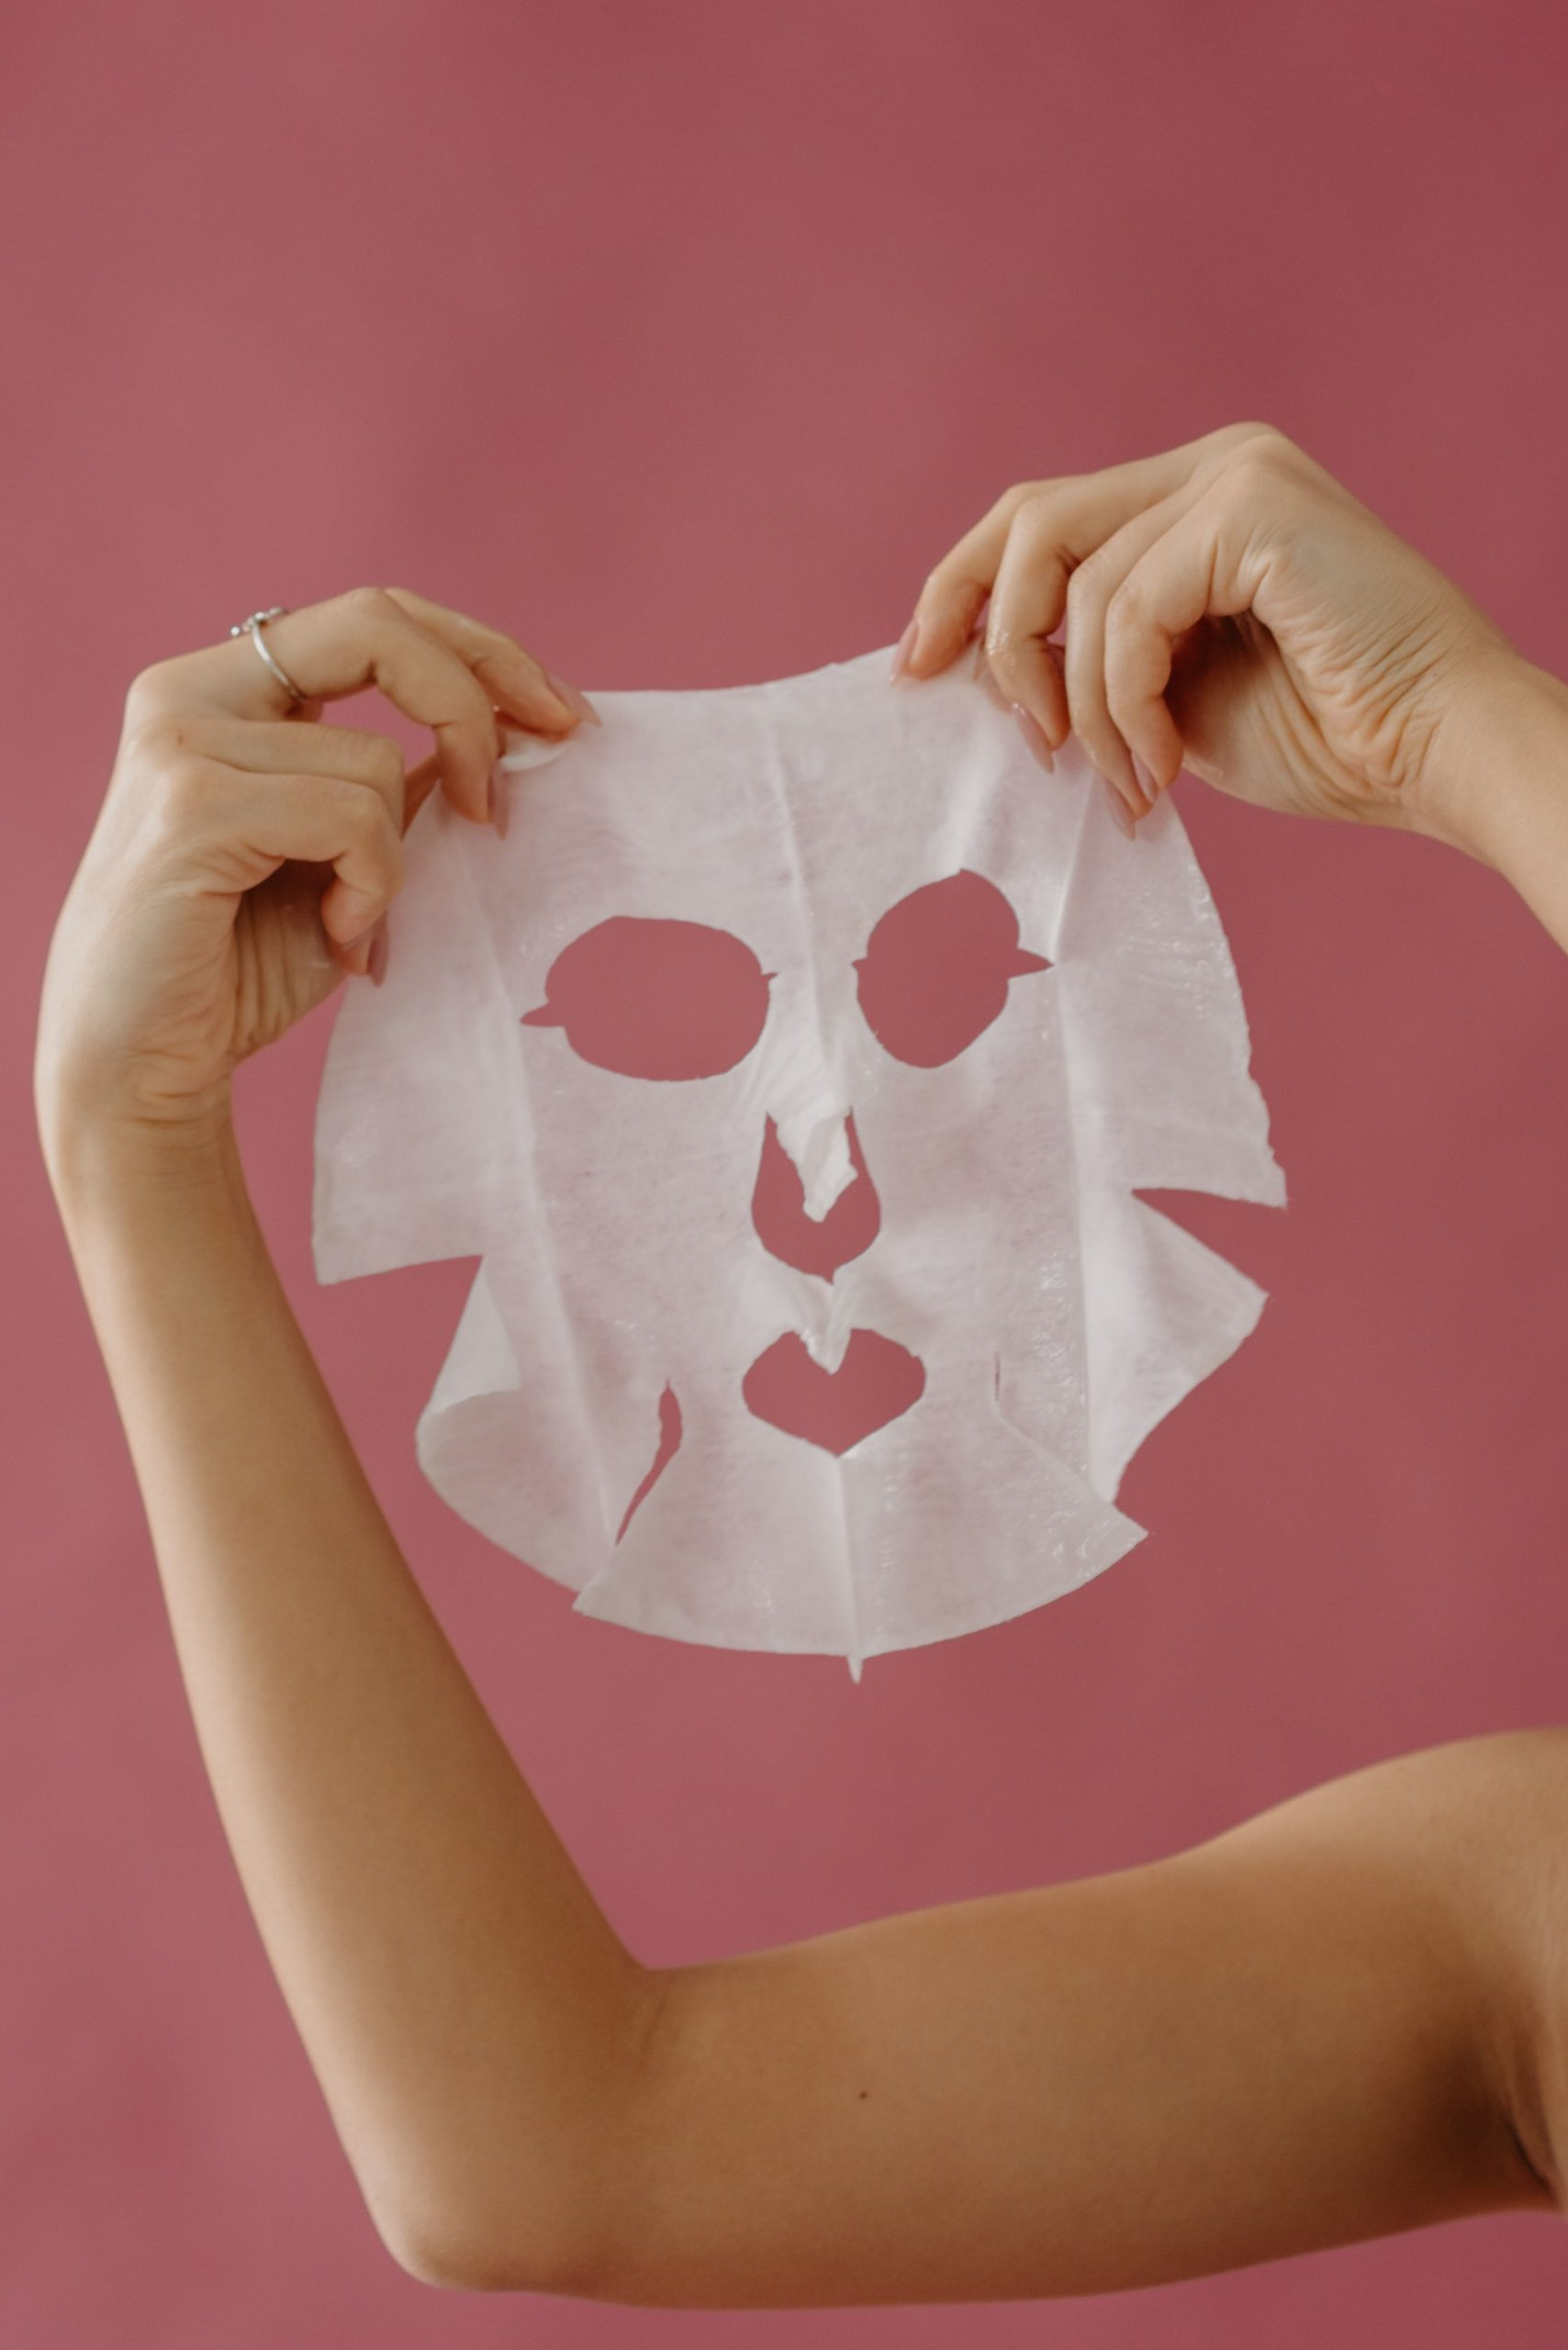 person holding up face mask